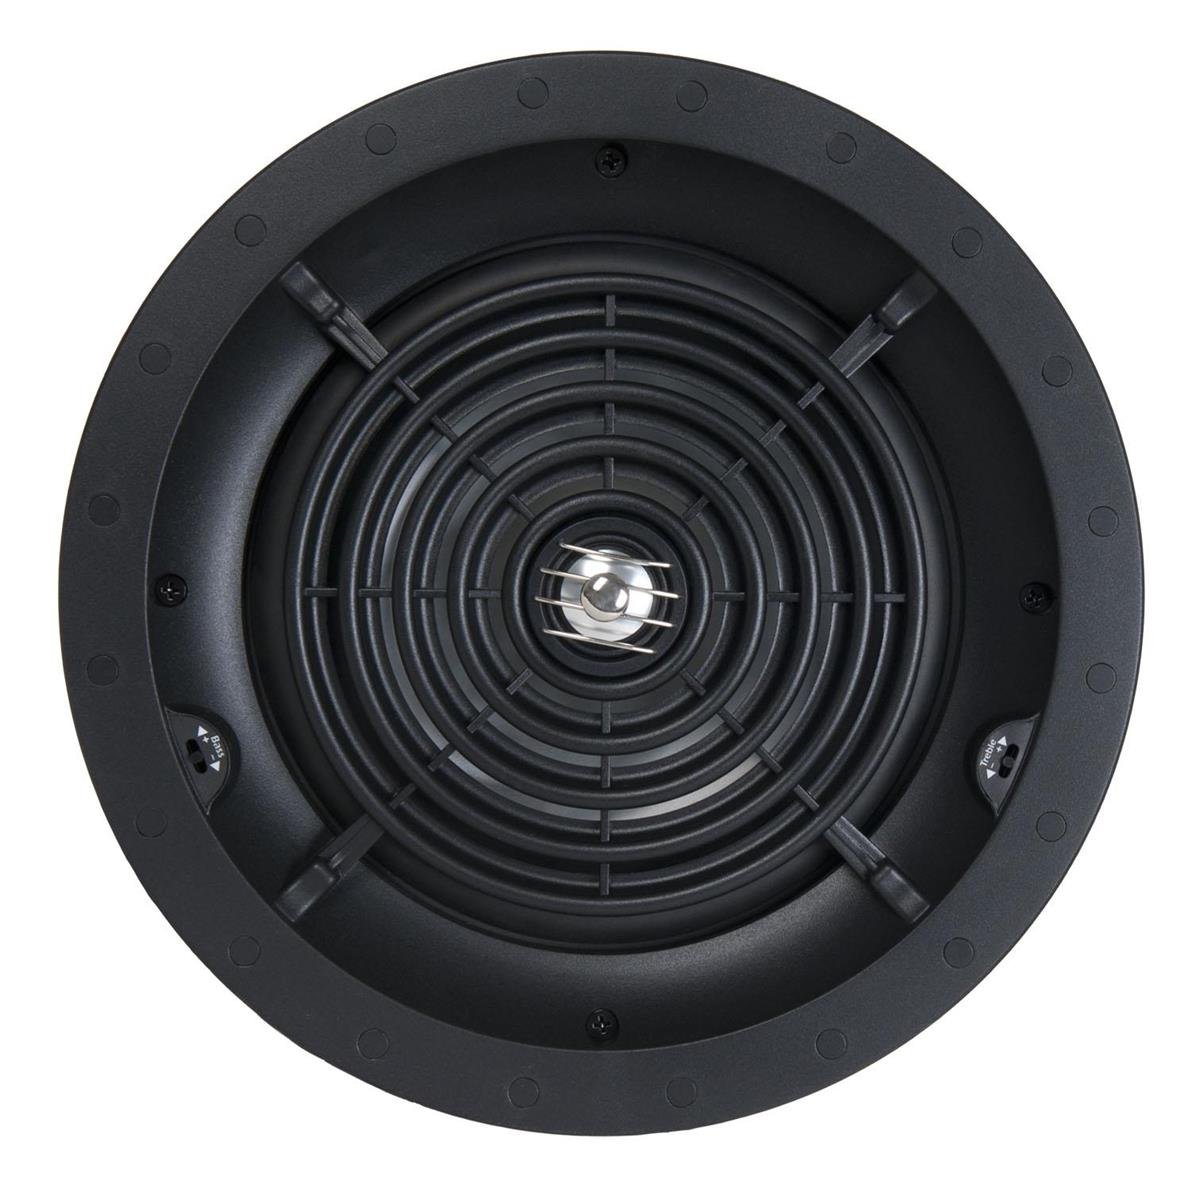 SpeakerCraft Profile CRS8 Three 8'' In-Ceiling Speaker - Each (Black with White Grill) by SpeakerCraft